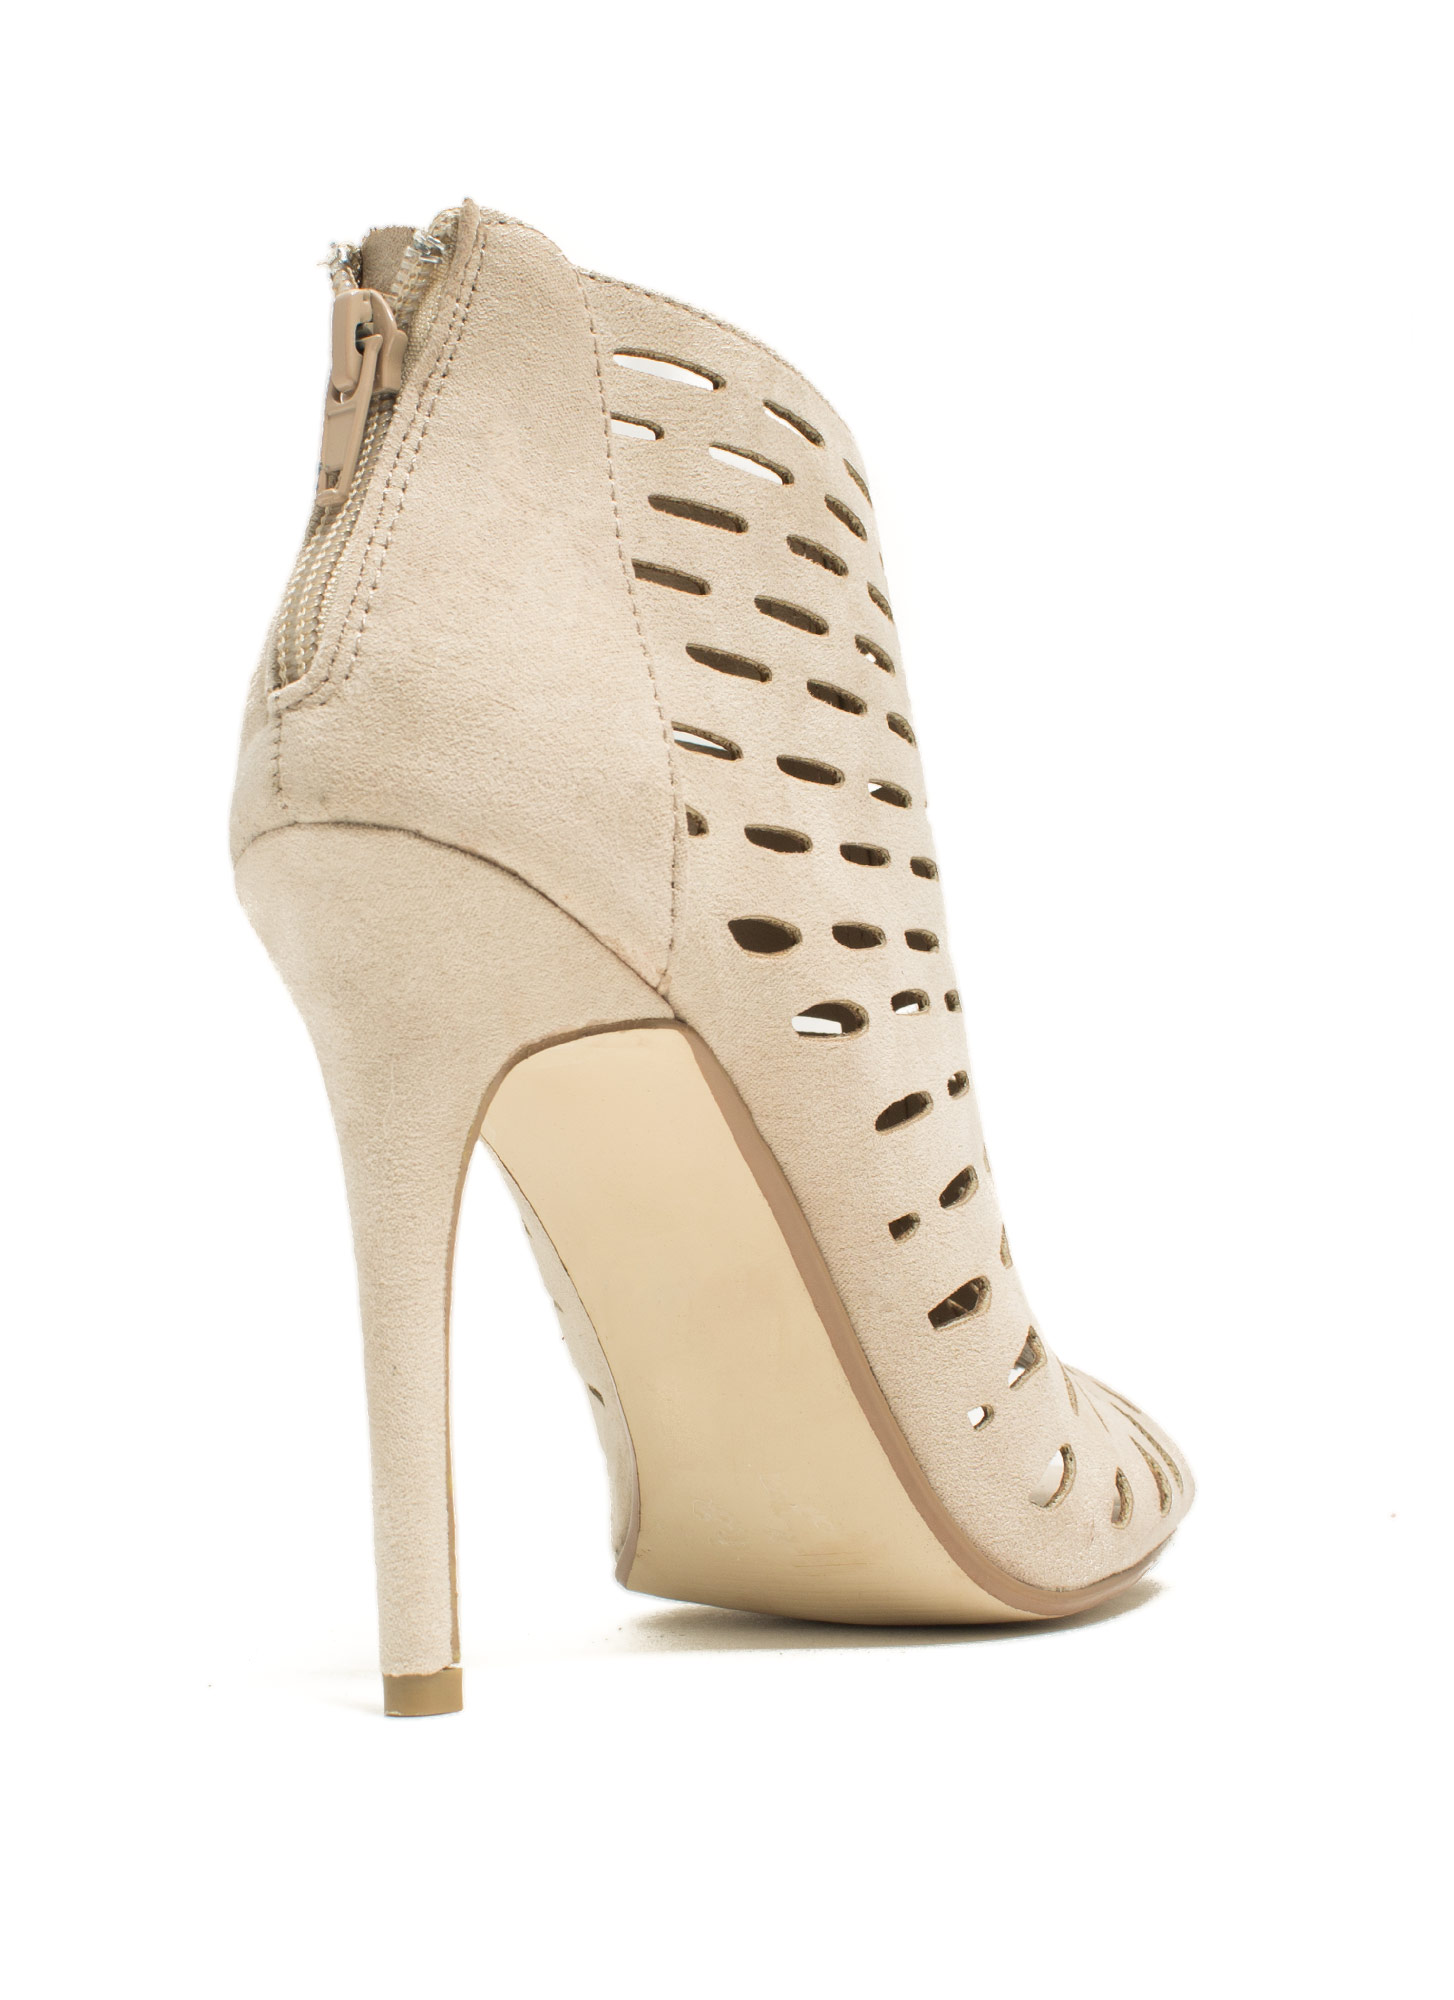 Slit Tight Bootie Heels STONE